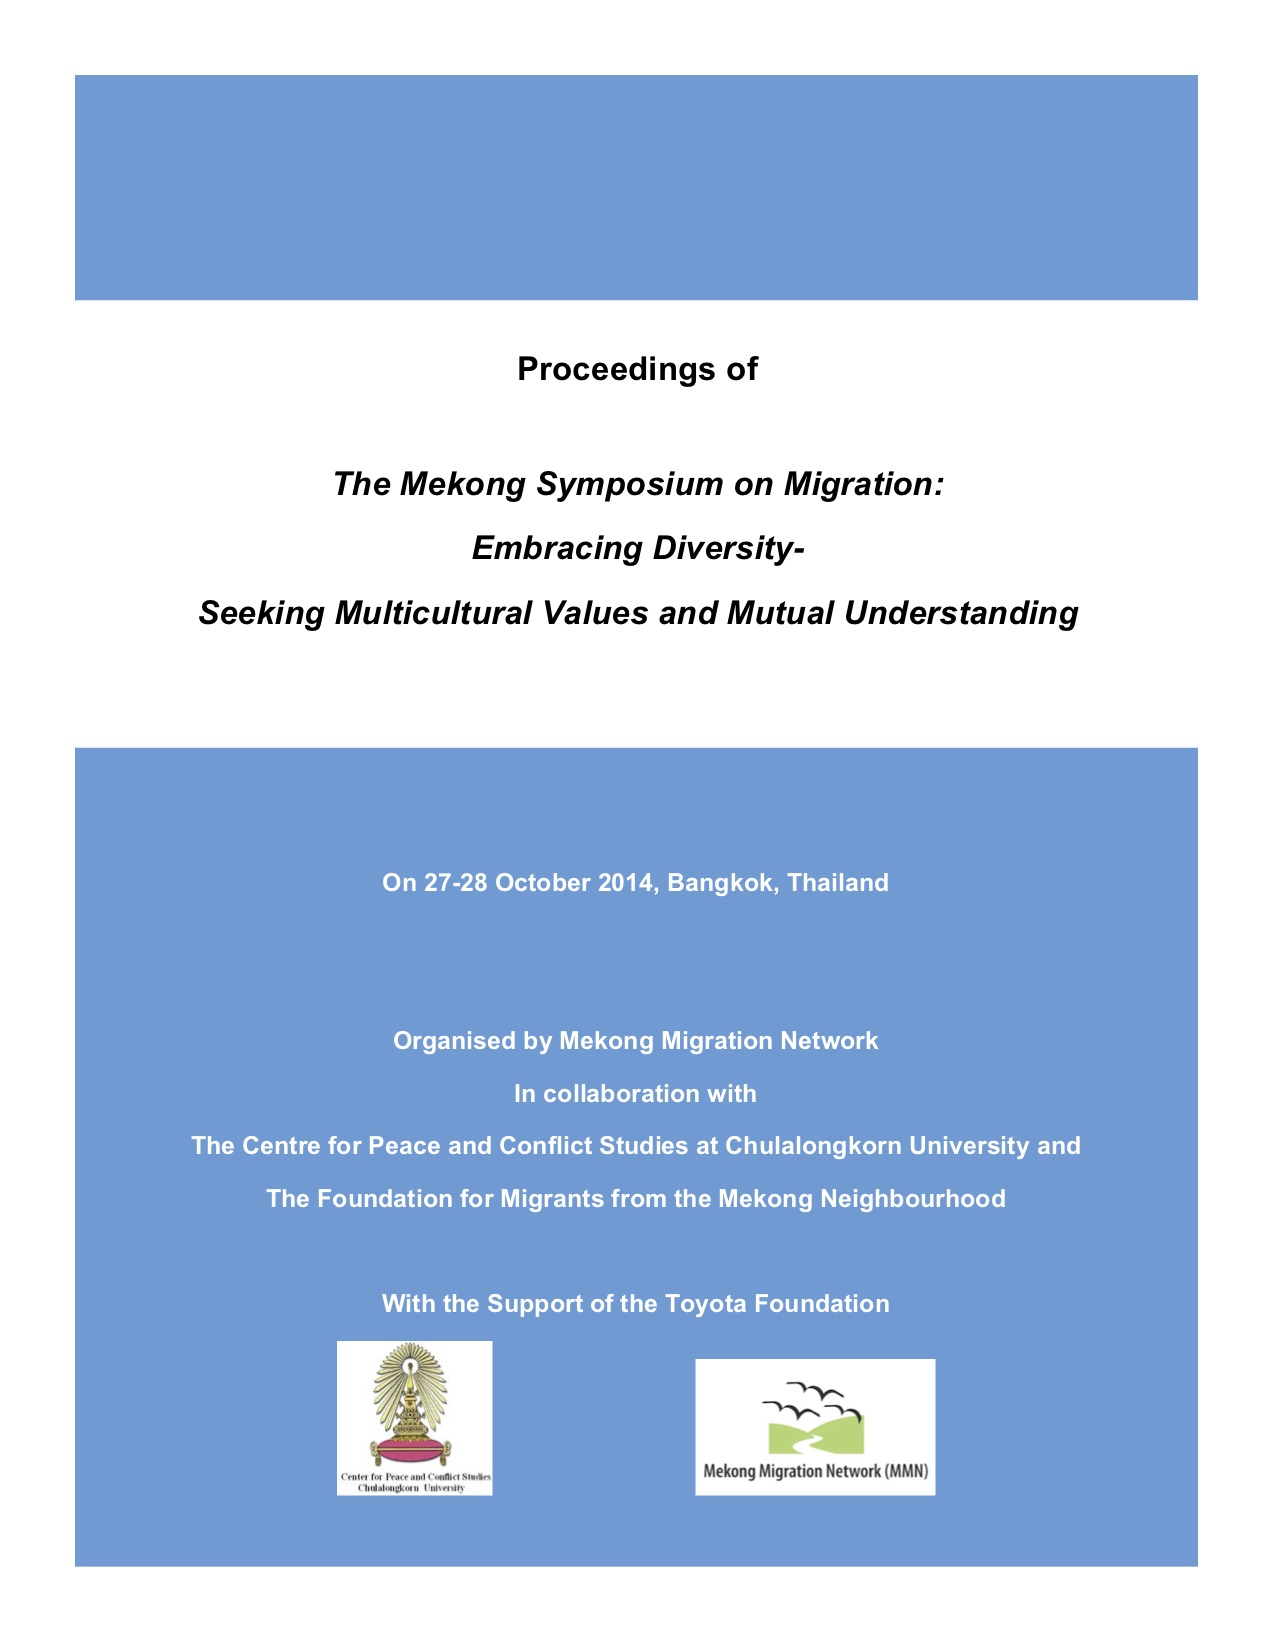 Final-draft-Proceedings-of-the-Mekong-Symposium-on-Migration.doc-revised-23-Dec-2014-LAYOUT-revised-26-Dec-web